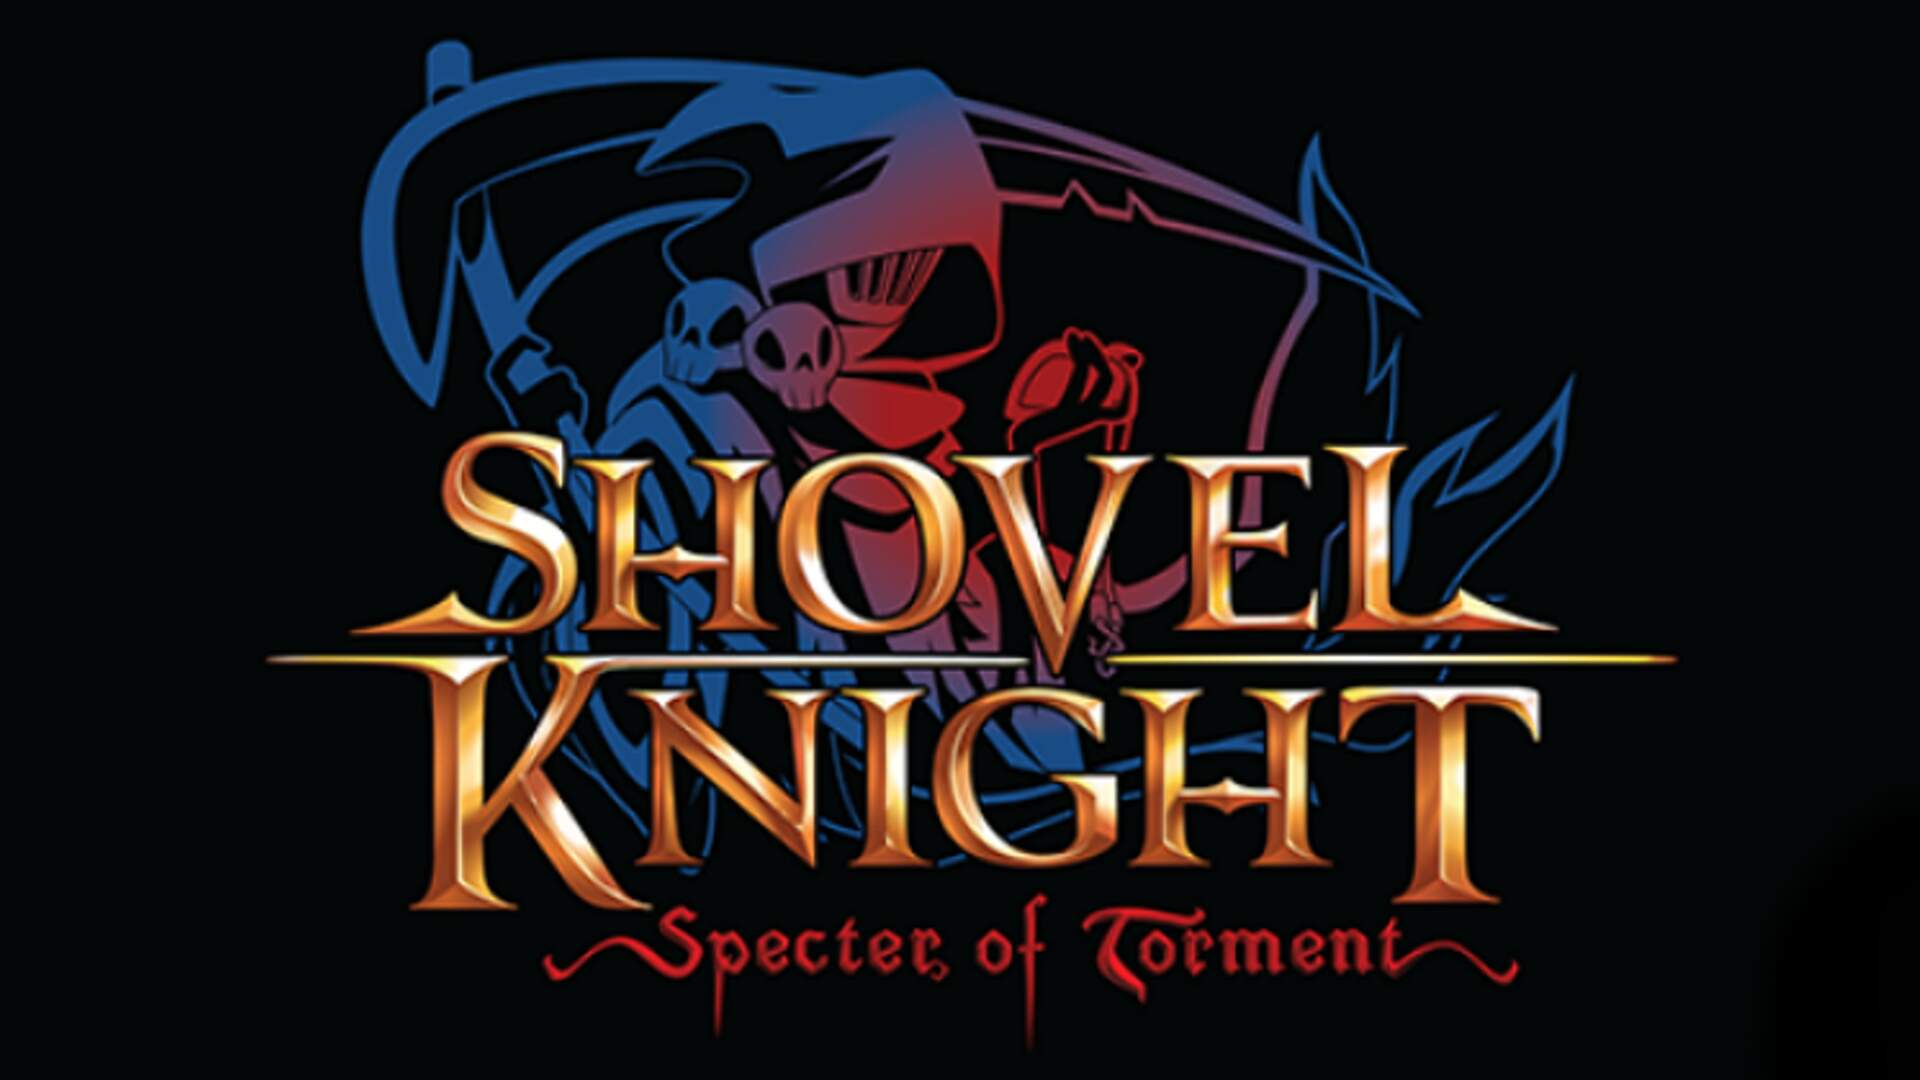 Shovel Knight Gets a Standalone Prequel with Spectre of Torment